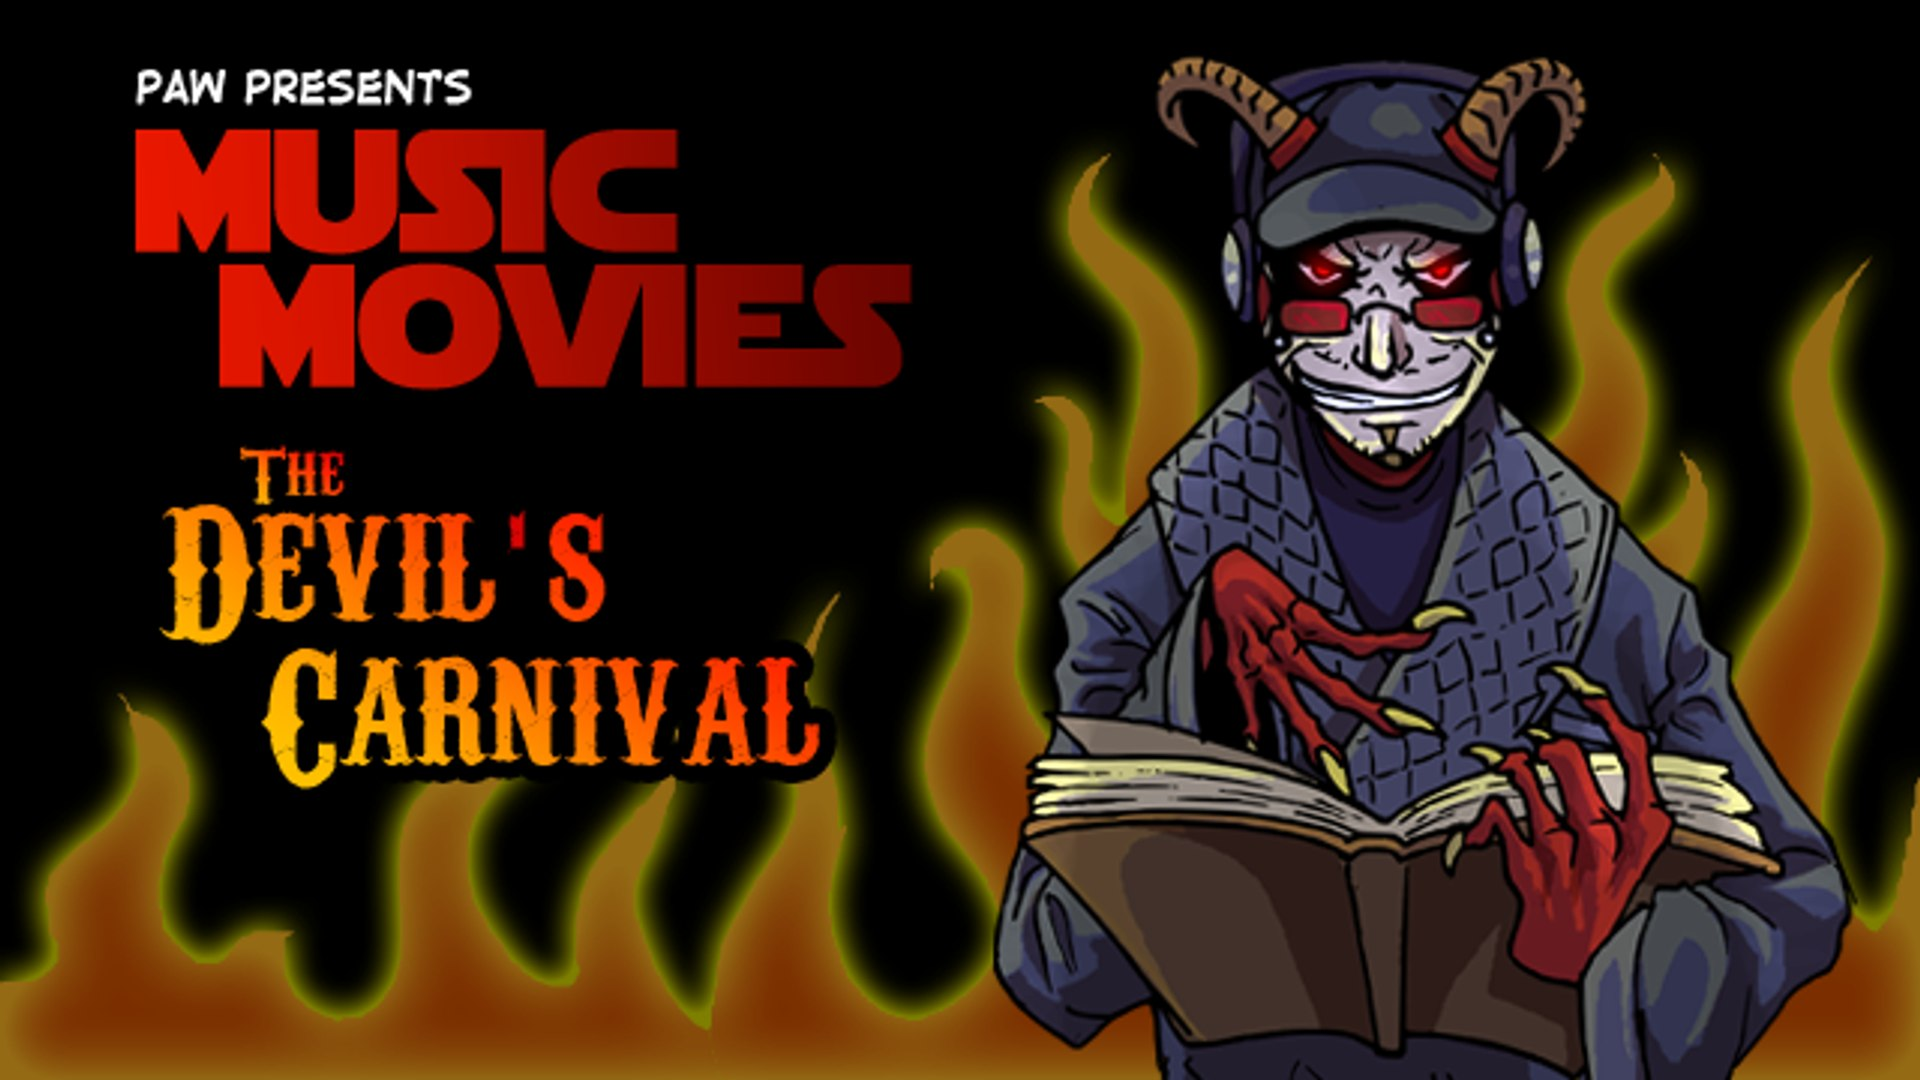 Music Movies - The Devil's Carnival